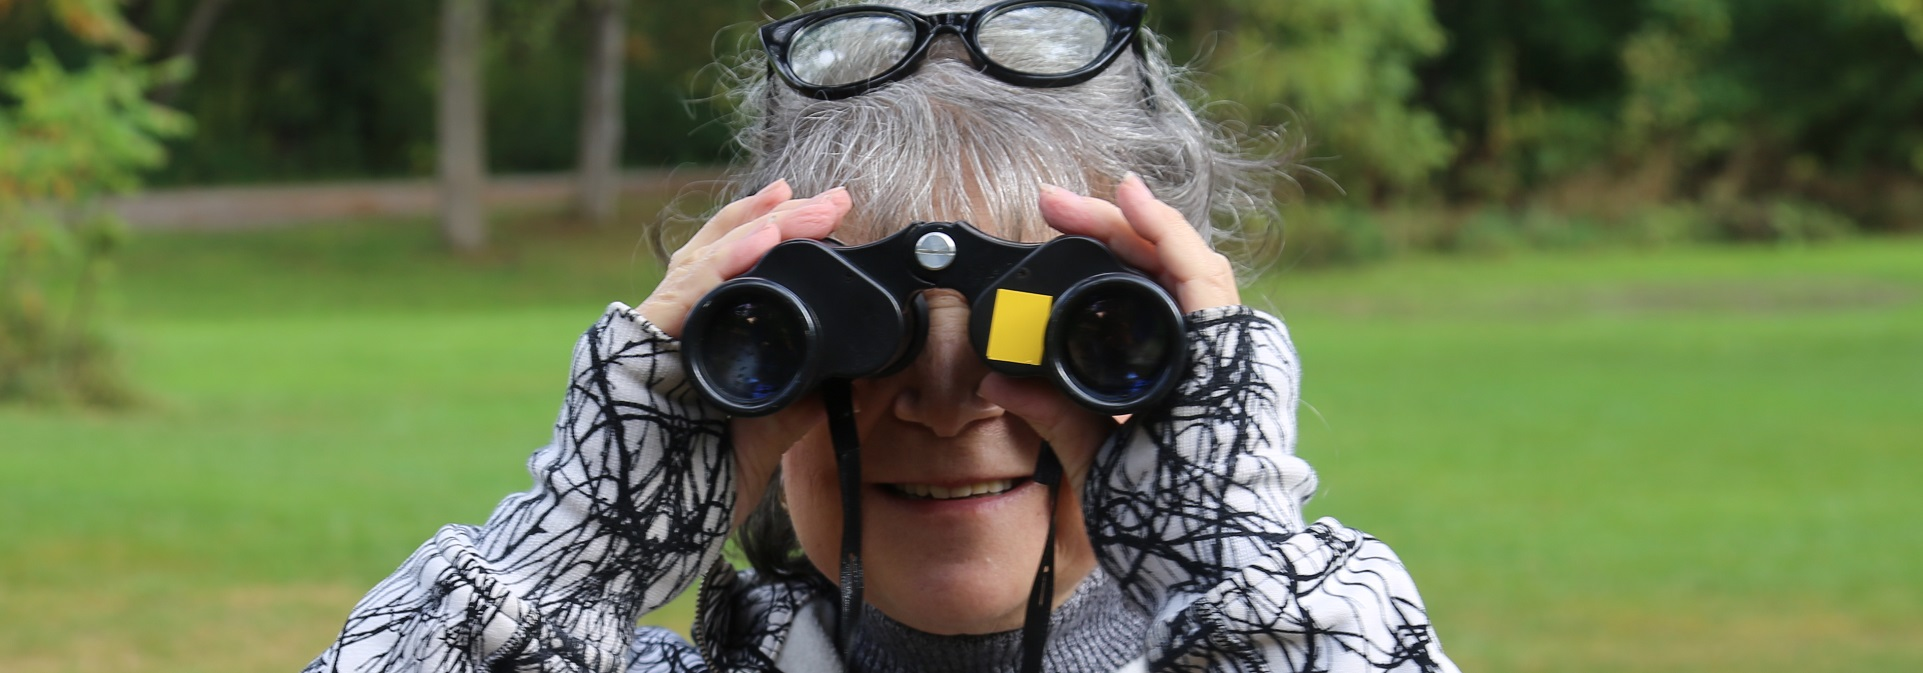 woman uses binoculars to birdwatch